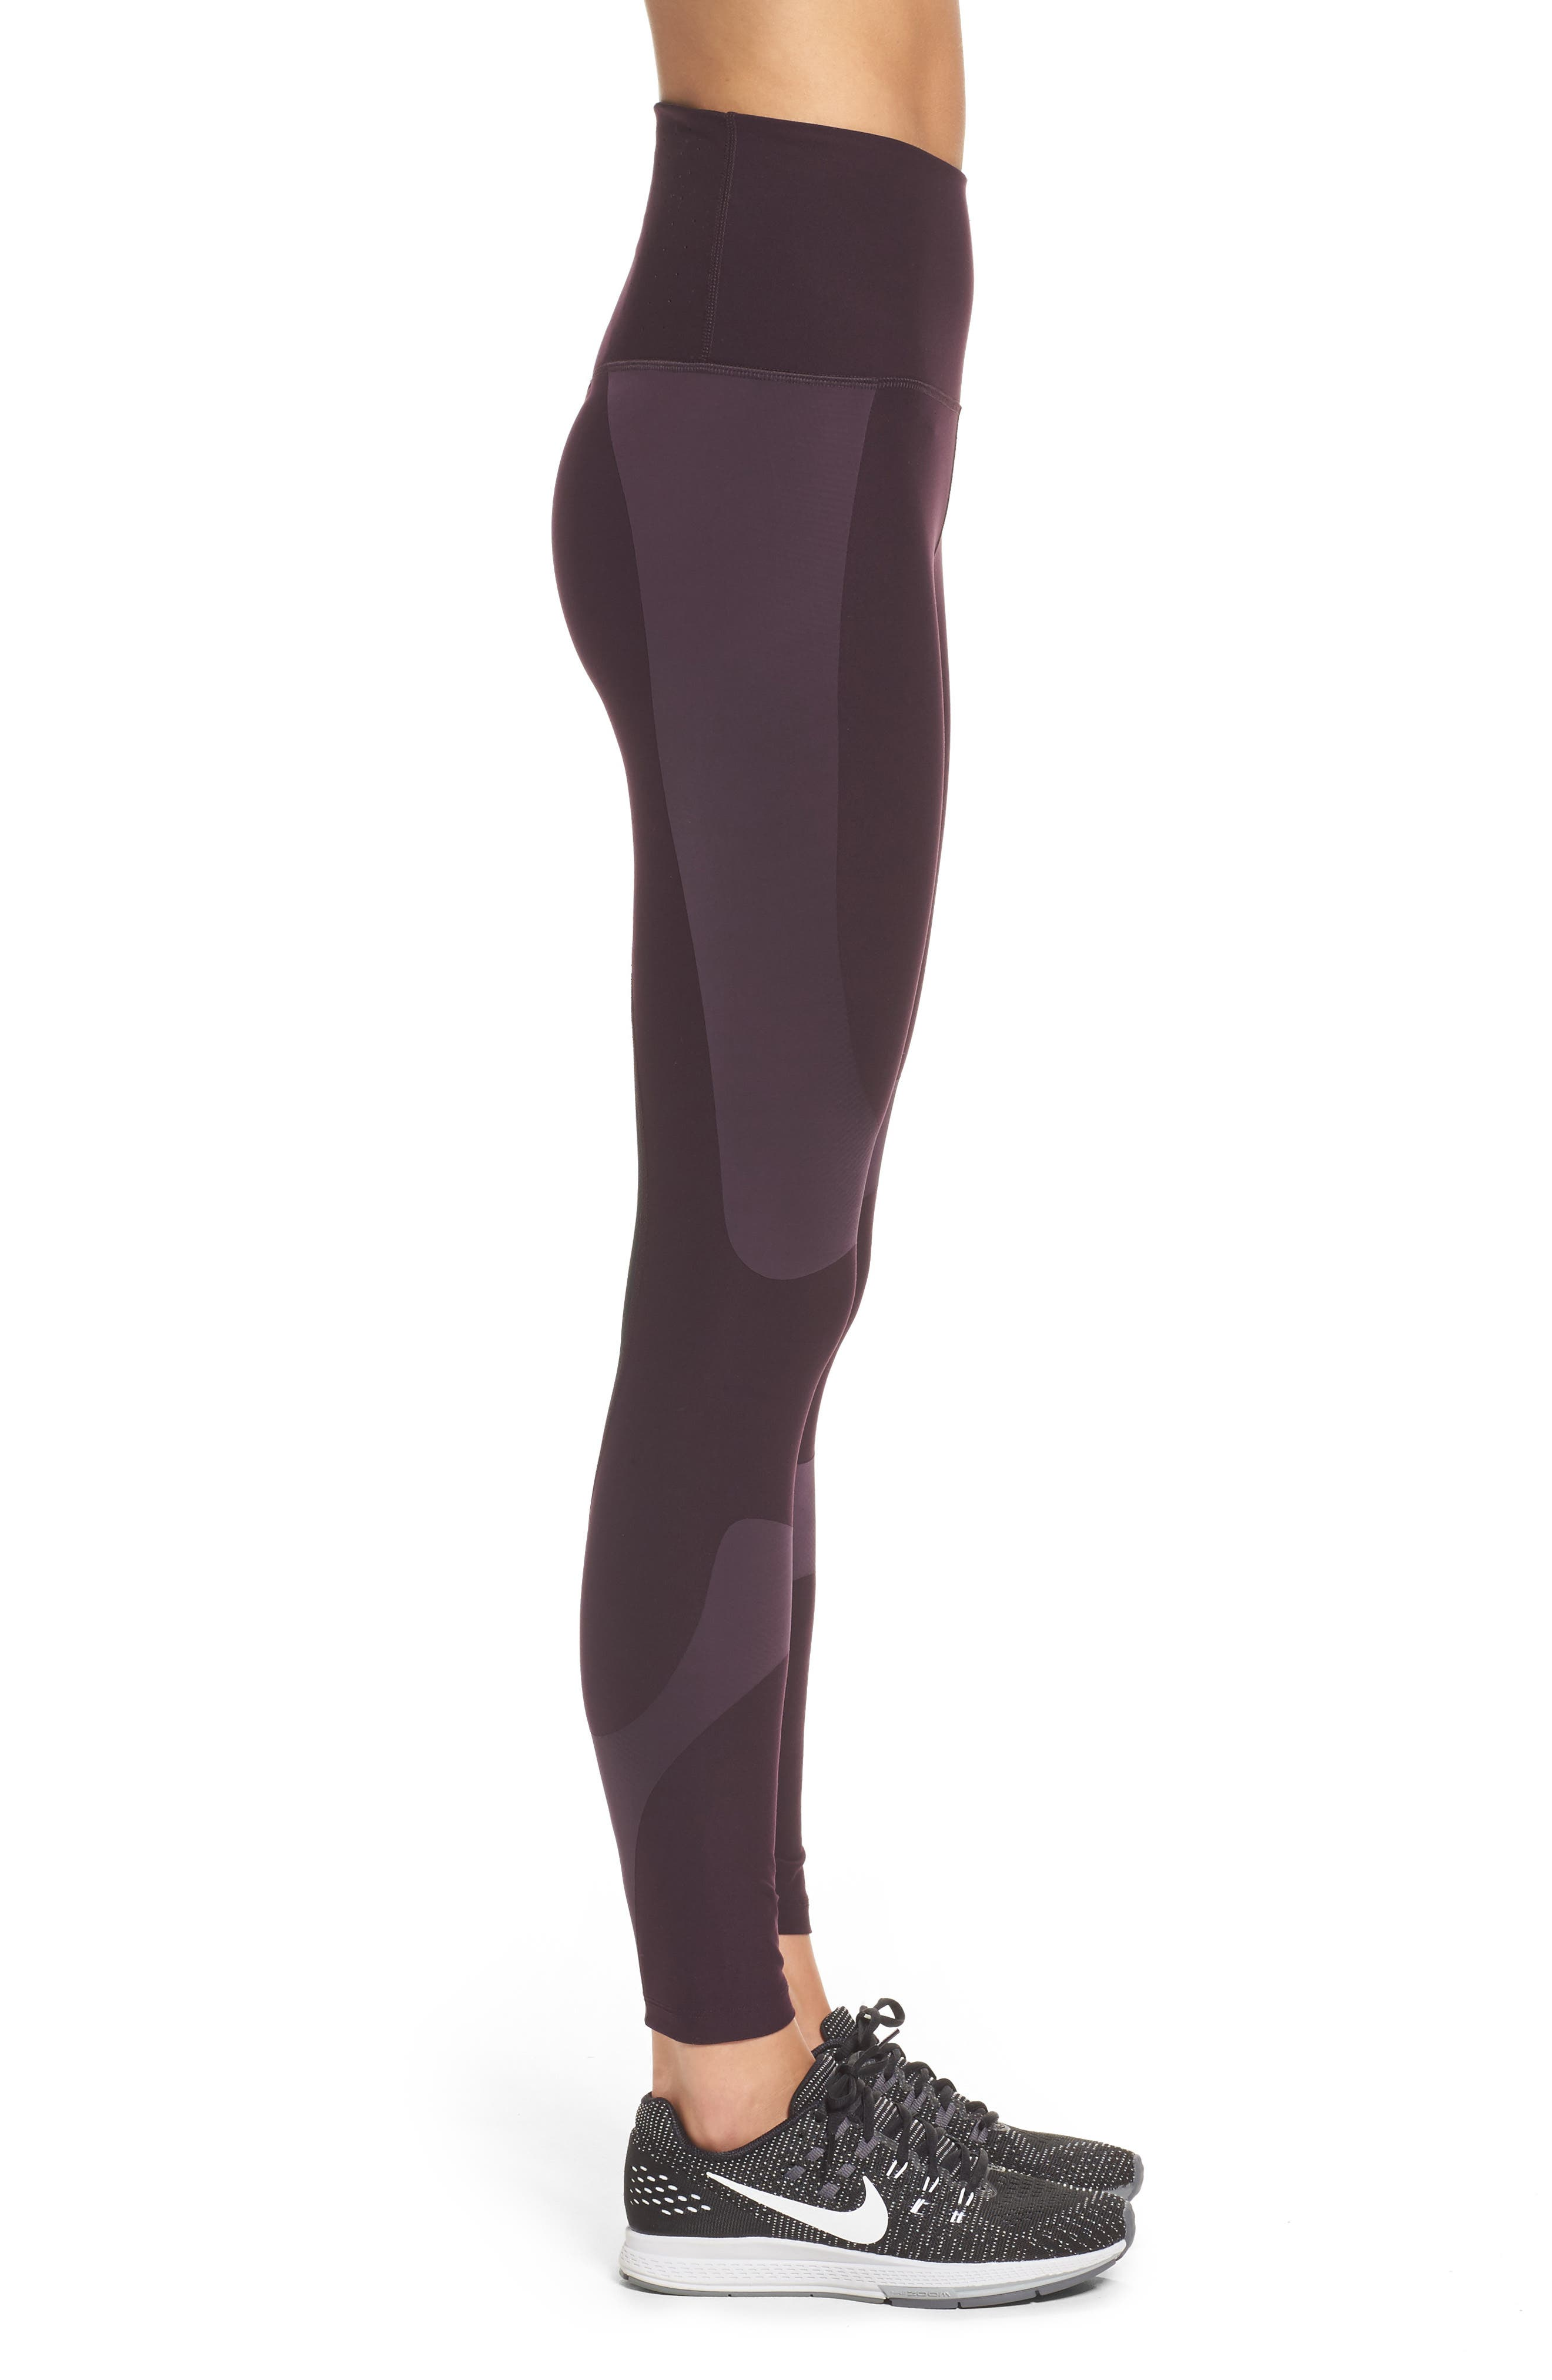 Power Legend Training Tights,                             Alternate thumbnail 10, color,